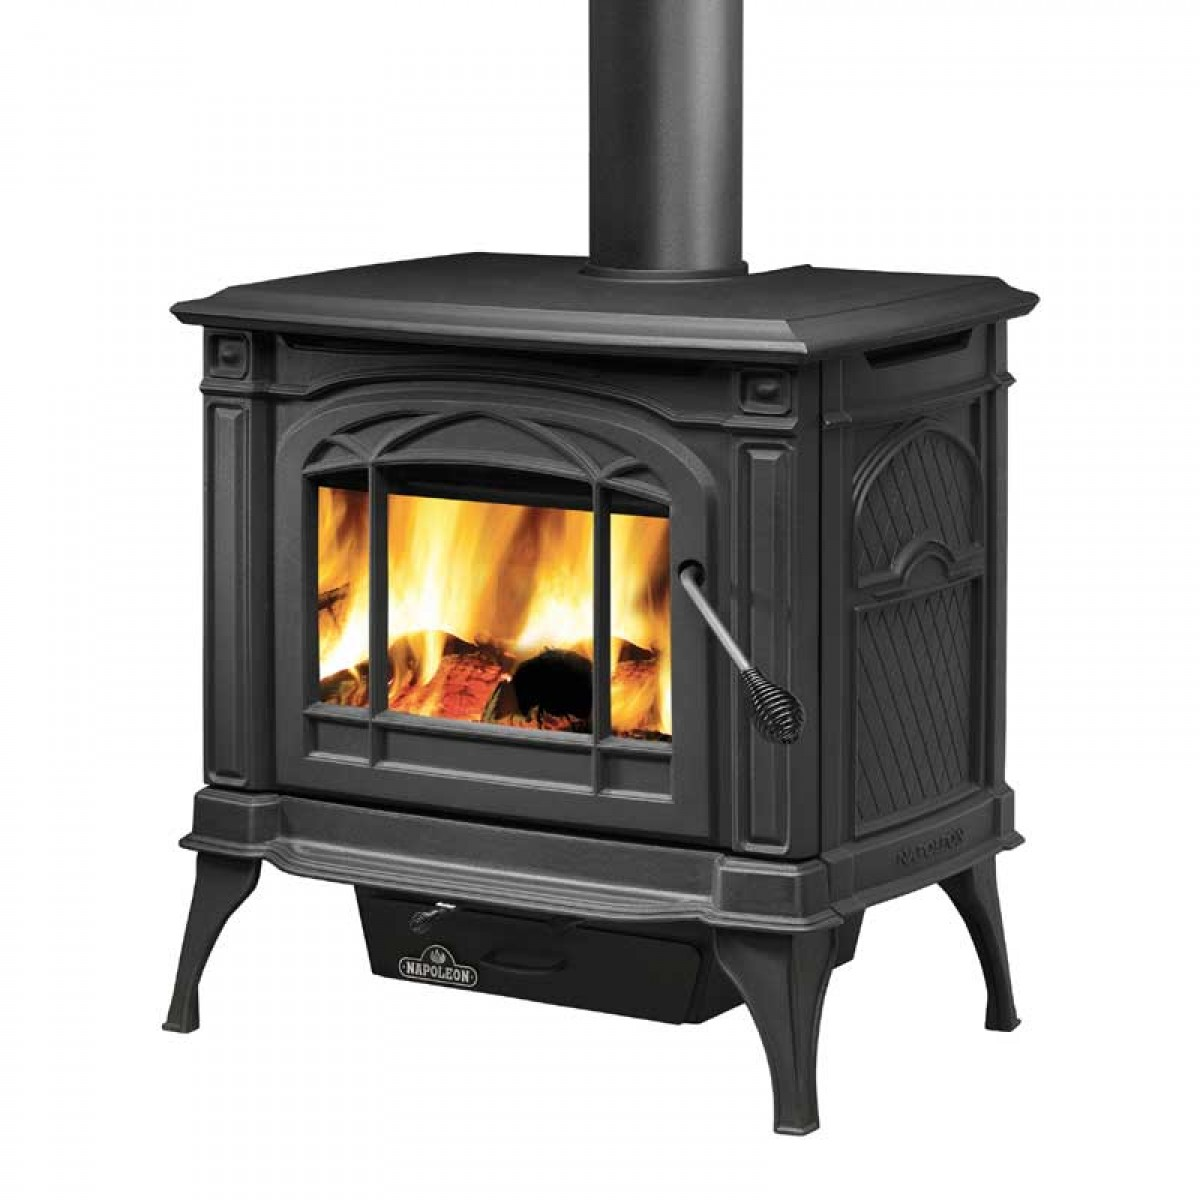 Napoleon 1100cp 1 cast iron wood burning stove metallic Wood burning stoves